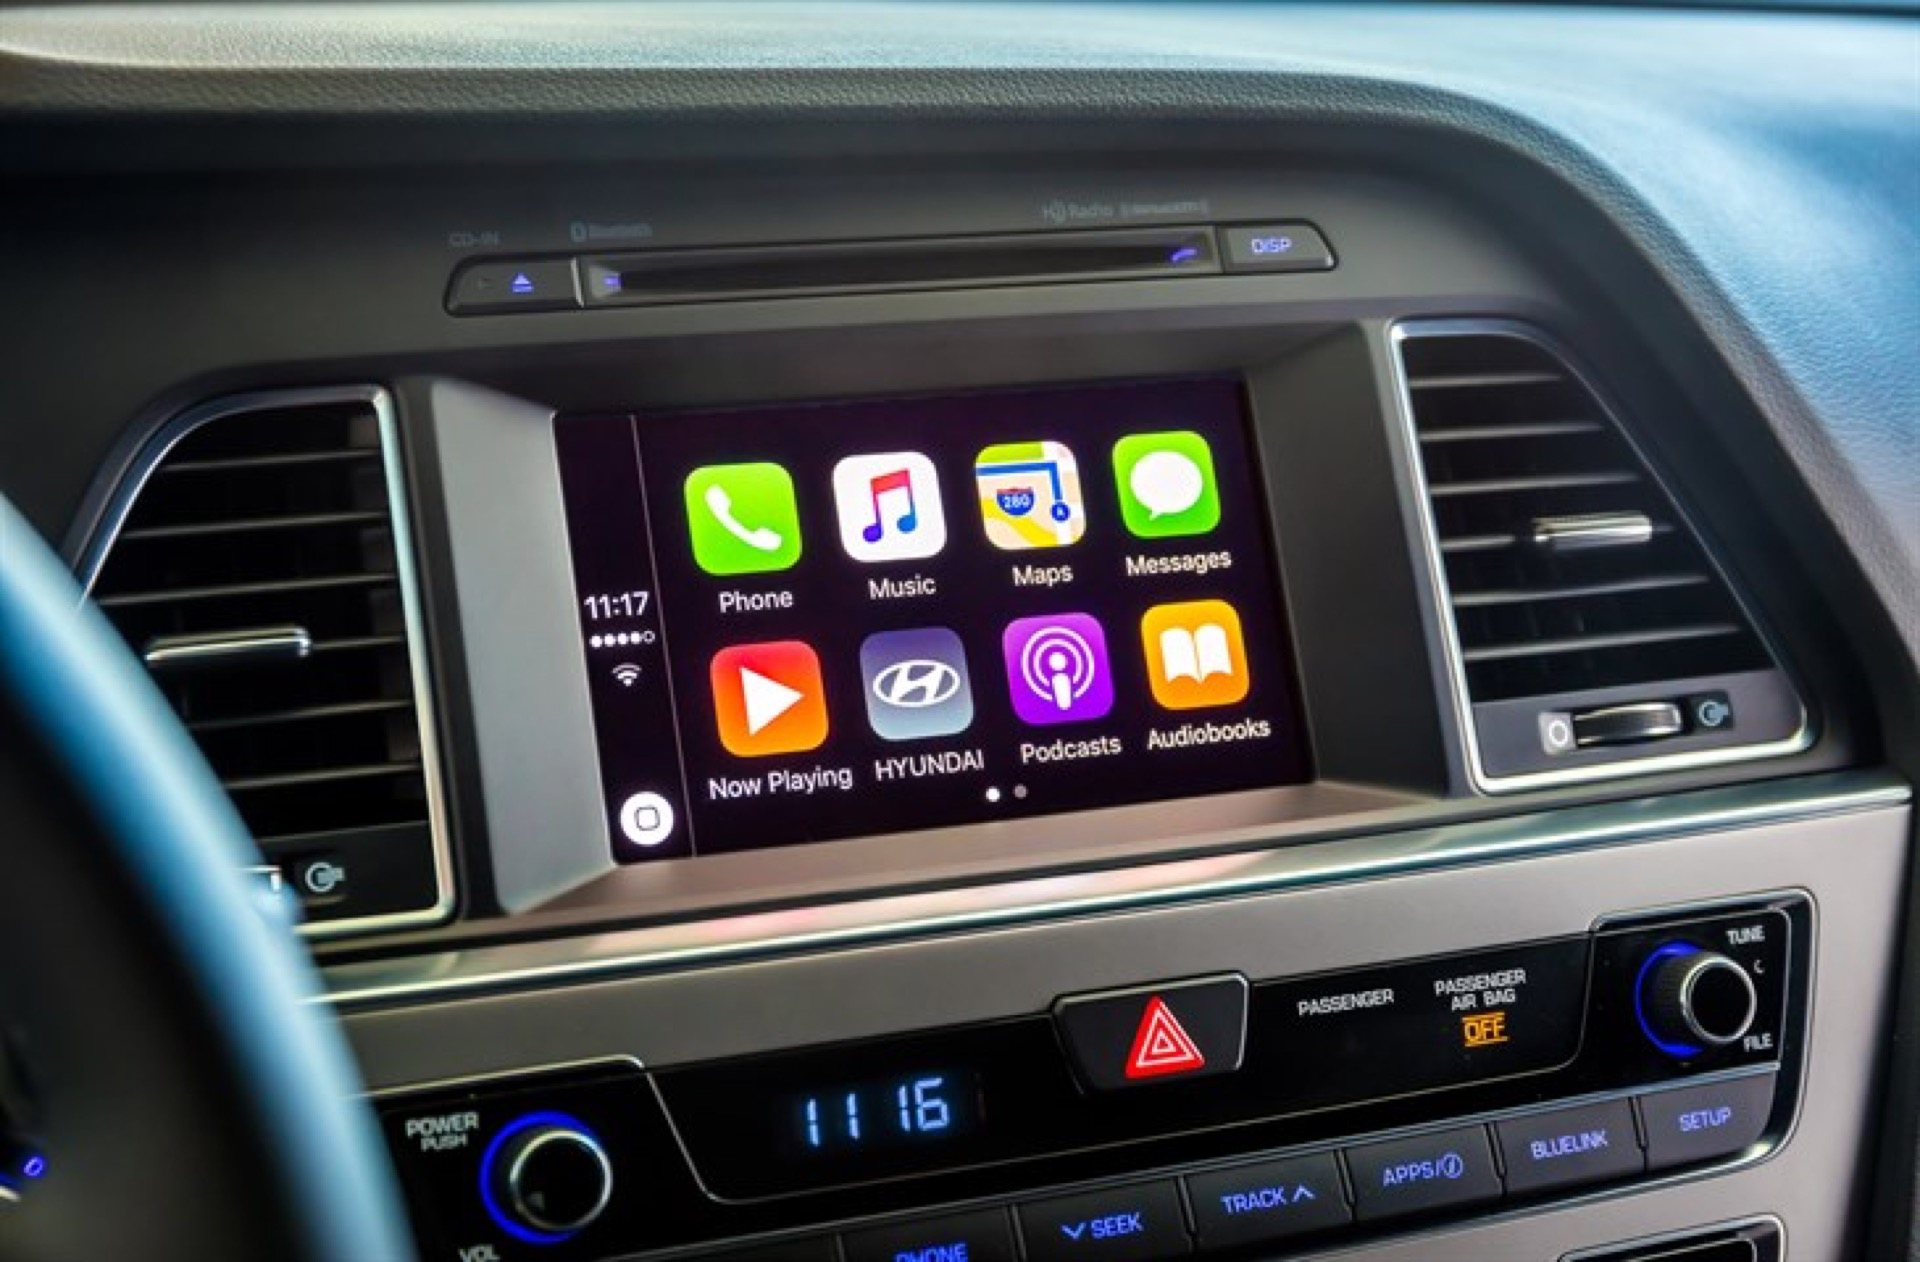 Used Mercedes Benz Dallas >> Hyundai enables DIY CarPlay, Android Auto upgrades for some 2015-2016 models